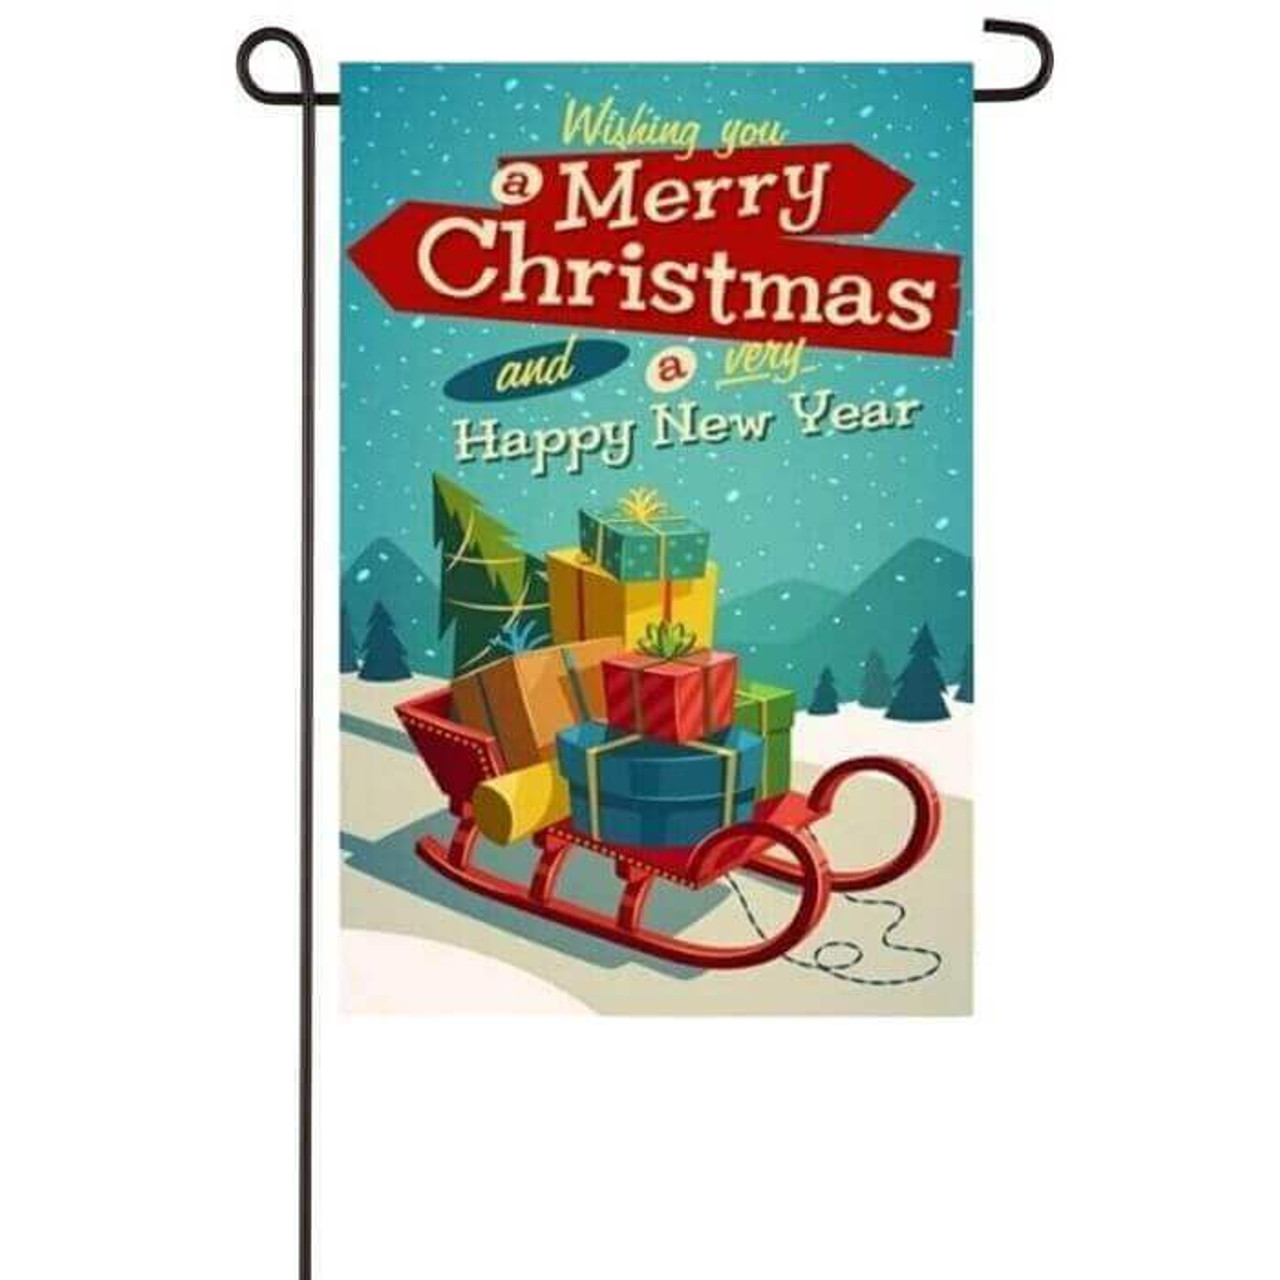 """This garden flag has a retro 70's look to it as it is a red sleigh packed with presents and a Christmas tree going down a snowy mountain with trees in the background. Above the sleigh is the text """"Wishing you a Merry Christmas and a very Happy New Year"""" in different fonts and colors resembling a retro 70's vibe."""